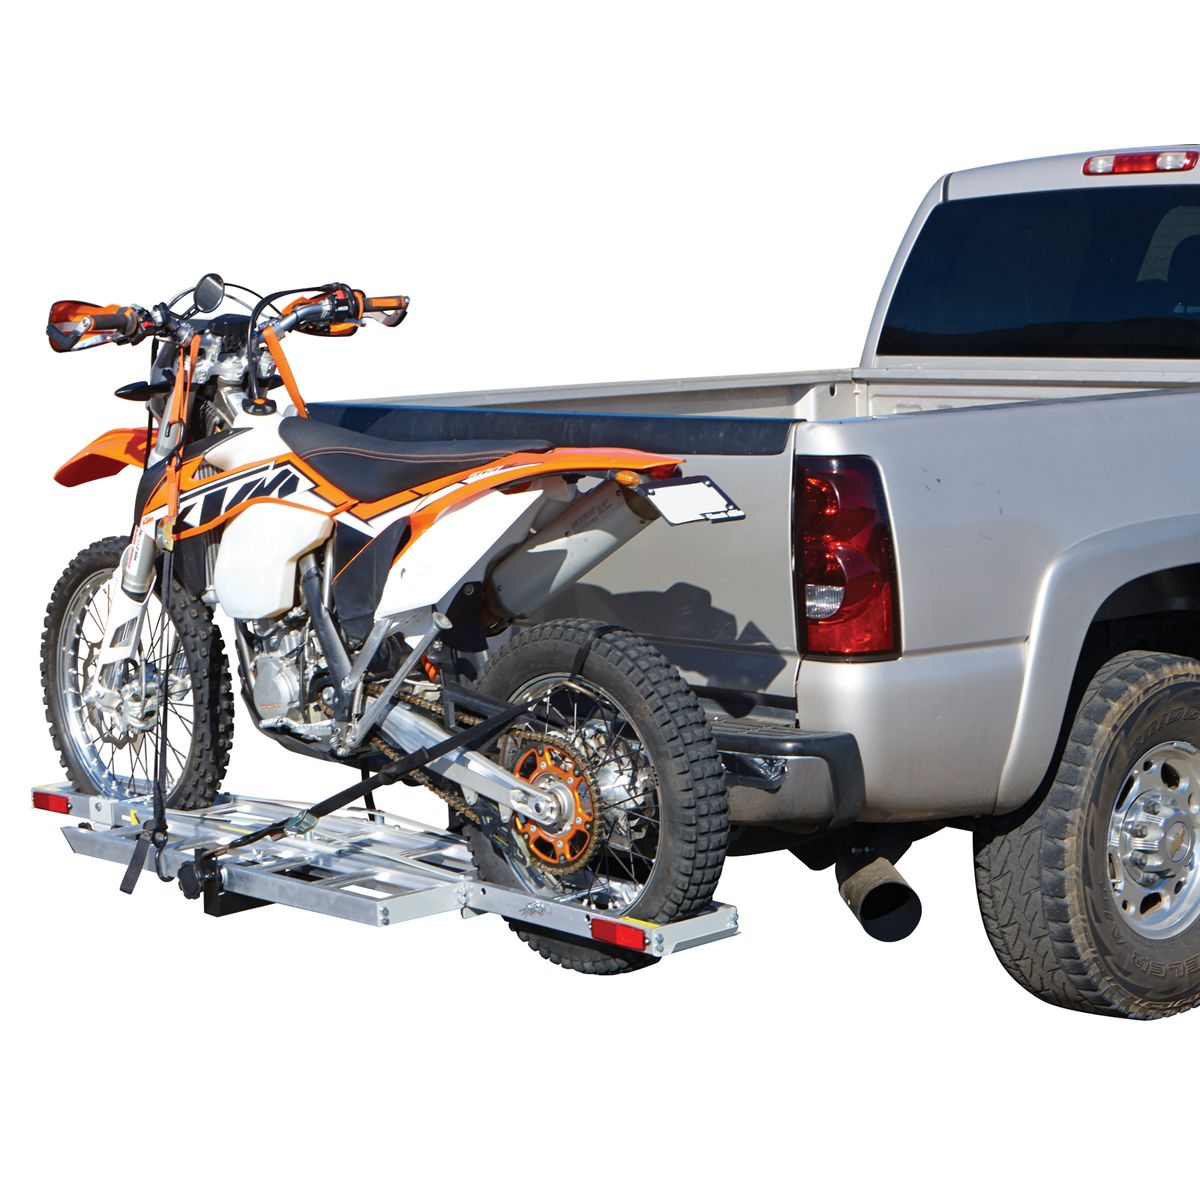 400 Lbs Receiver Mount Motorcycle Carrier Motorcycle Carrier